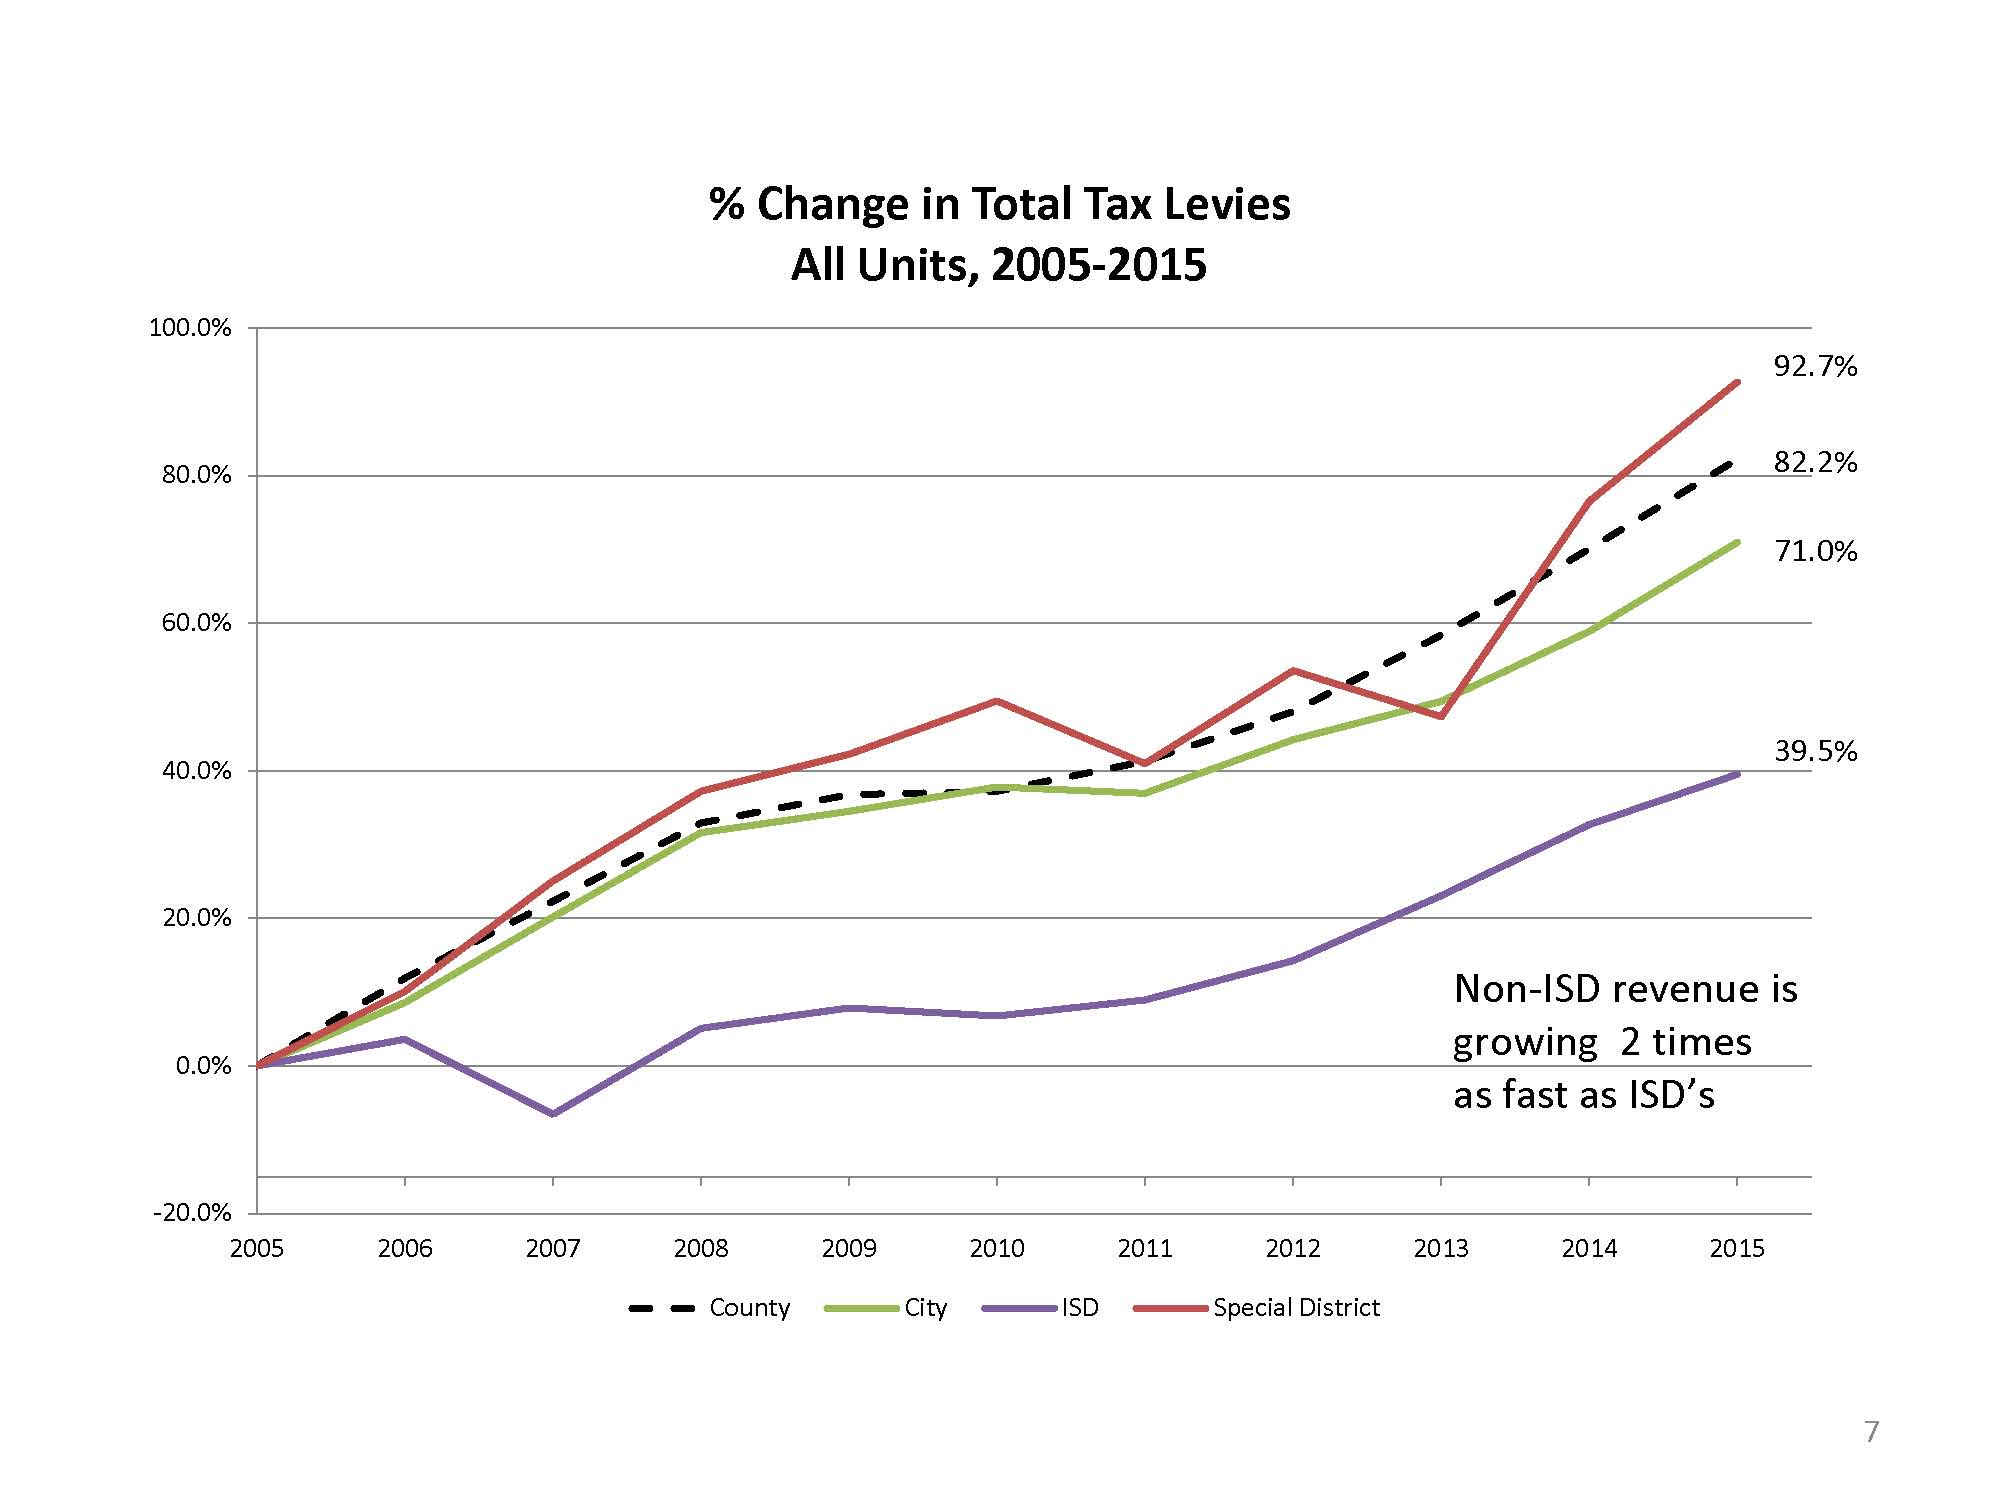 Chart by author of SB1 showing growth of county, city, ISD, special district total tax levies 2005 to 2015